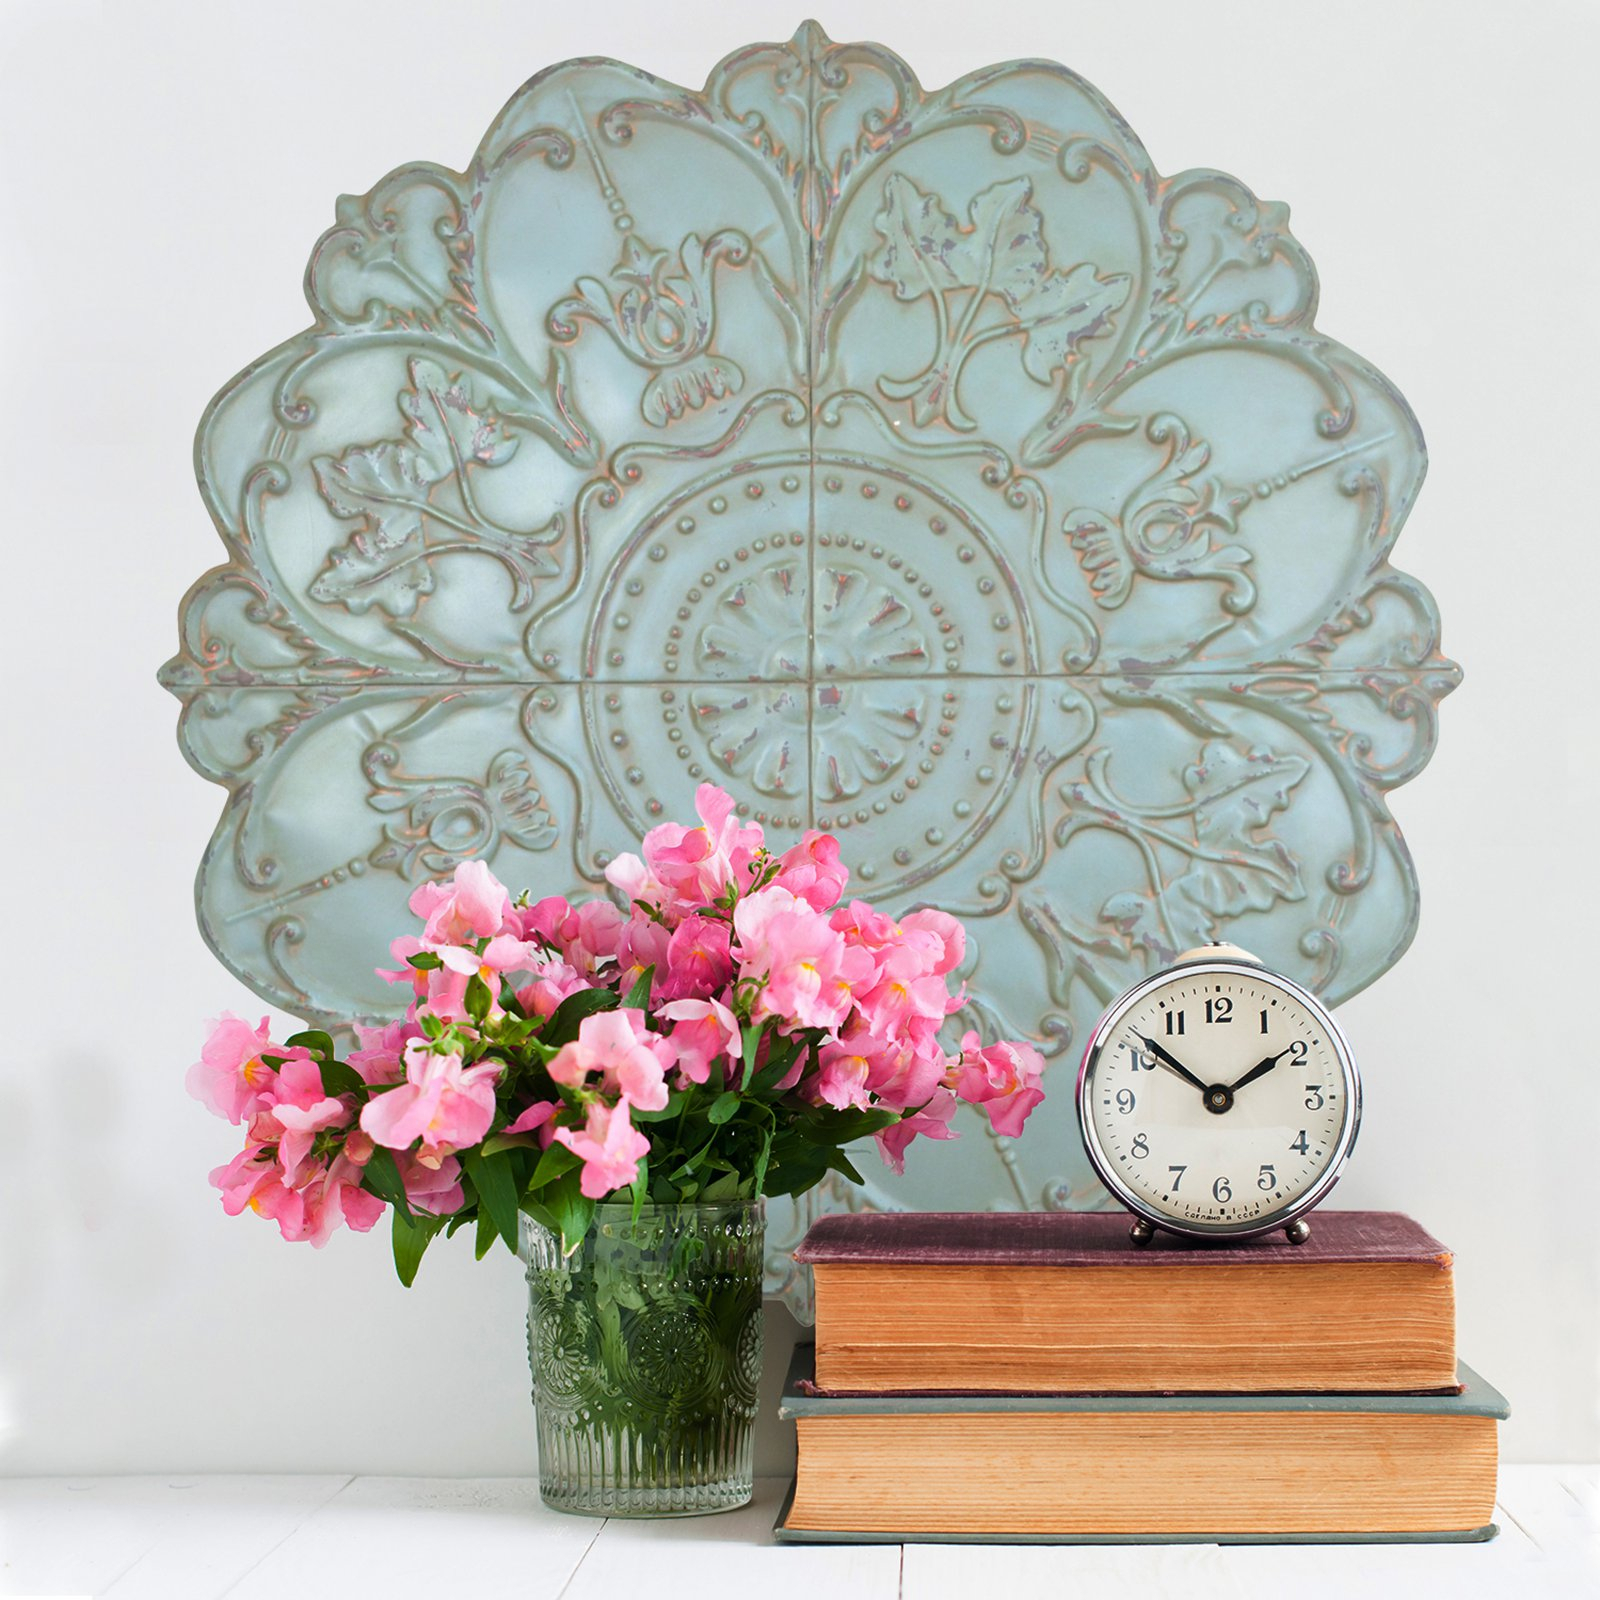 Shabby Medallion Wall Decor Throughout Trendy Stratton Home Decor Shabby Medallion Wall Decor – Walmart (Gallery 3 of 20)